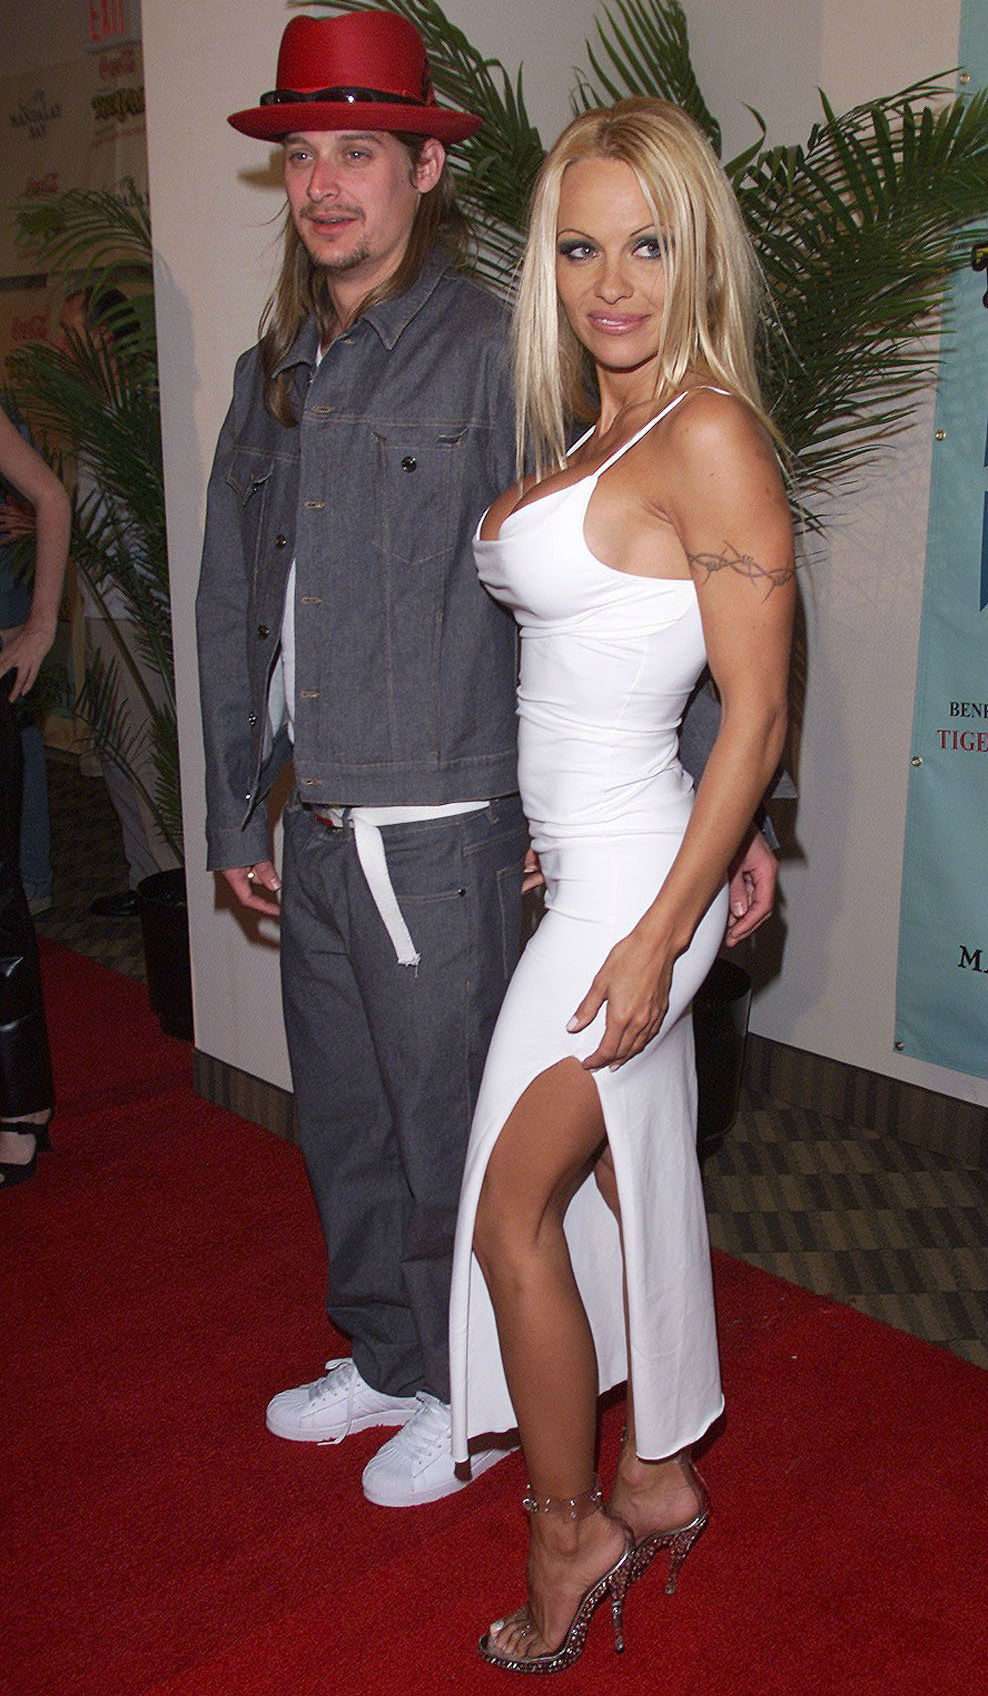 jaw-droppingly-short-celebrity-marriages-02